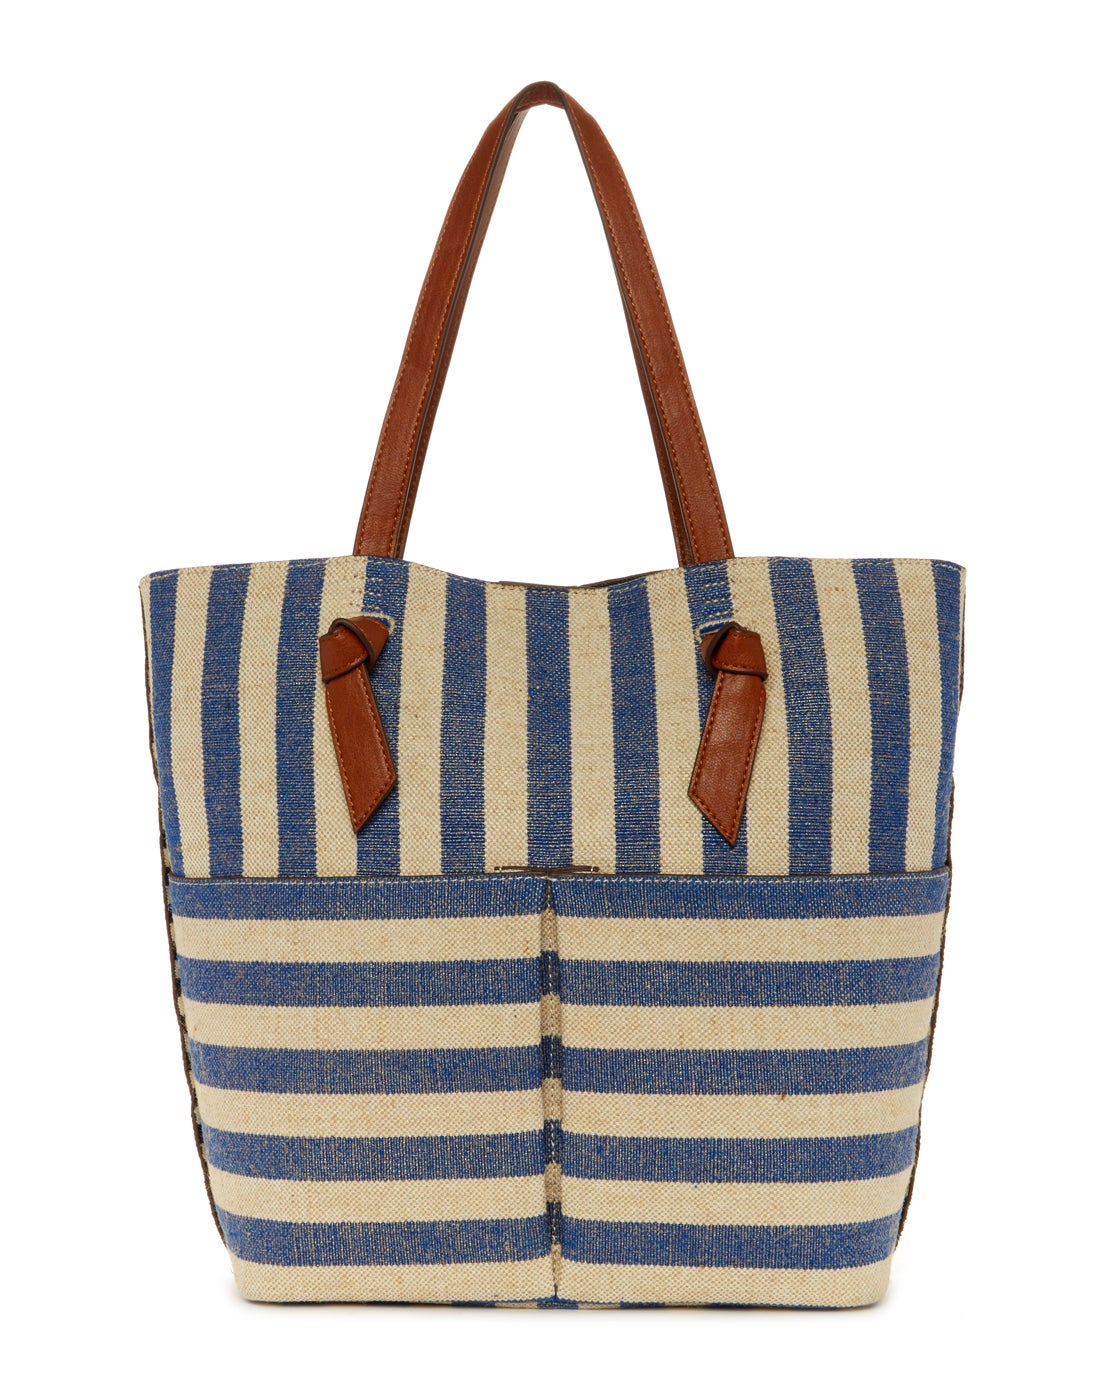 Splendid Women's Bodega Metallic Stripe Tote